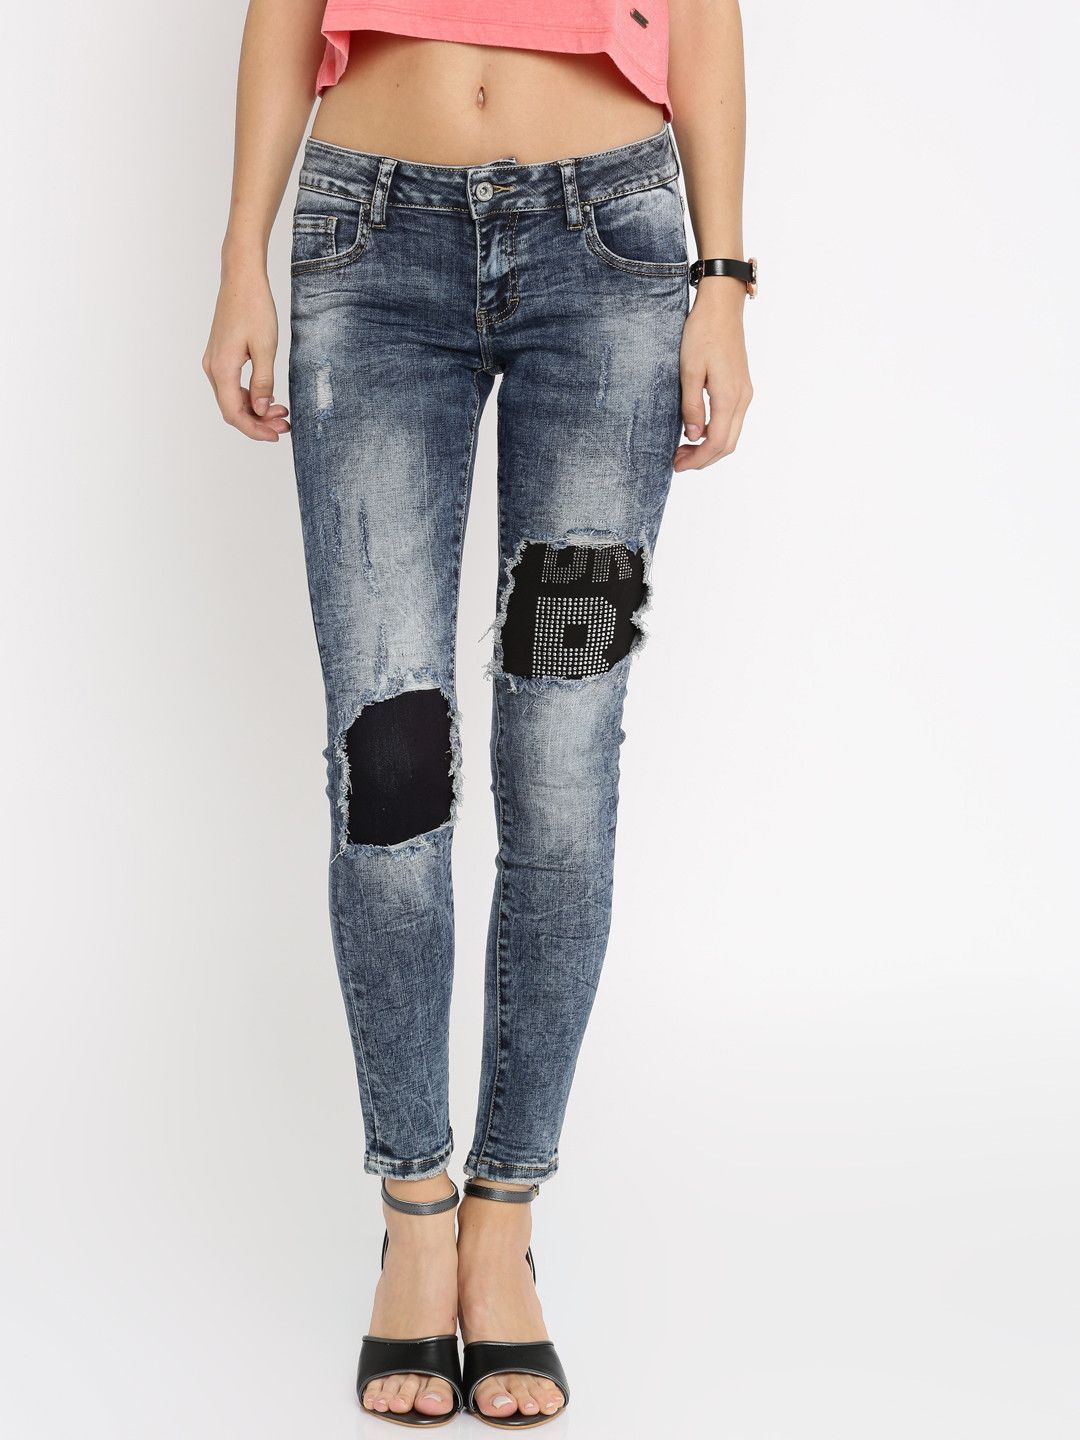 Deal jeans women blue skinny fit midrise highly